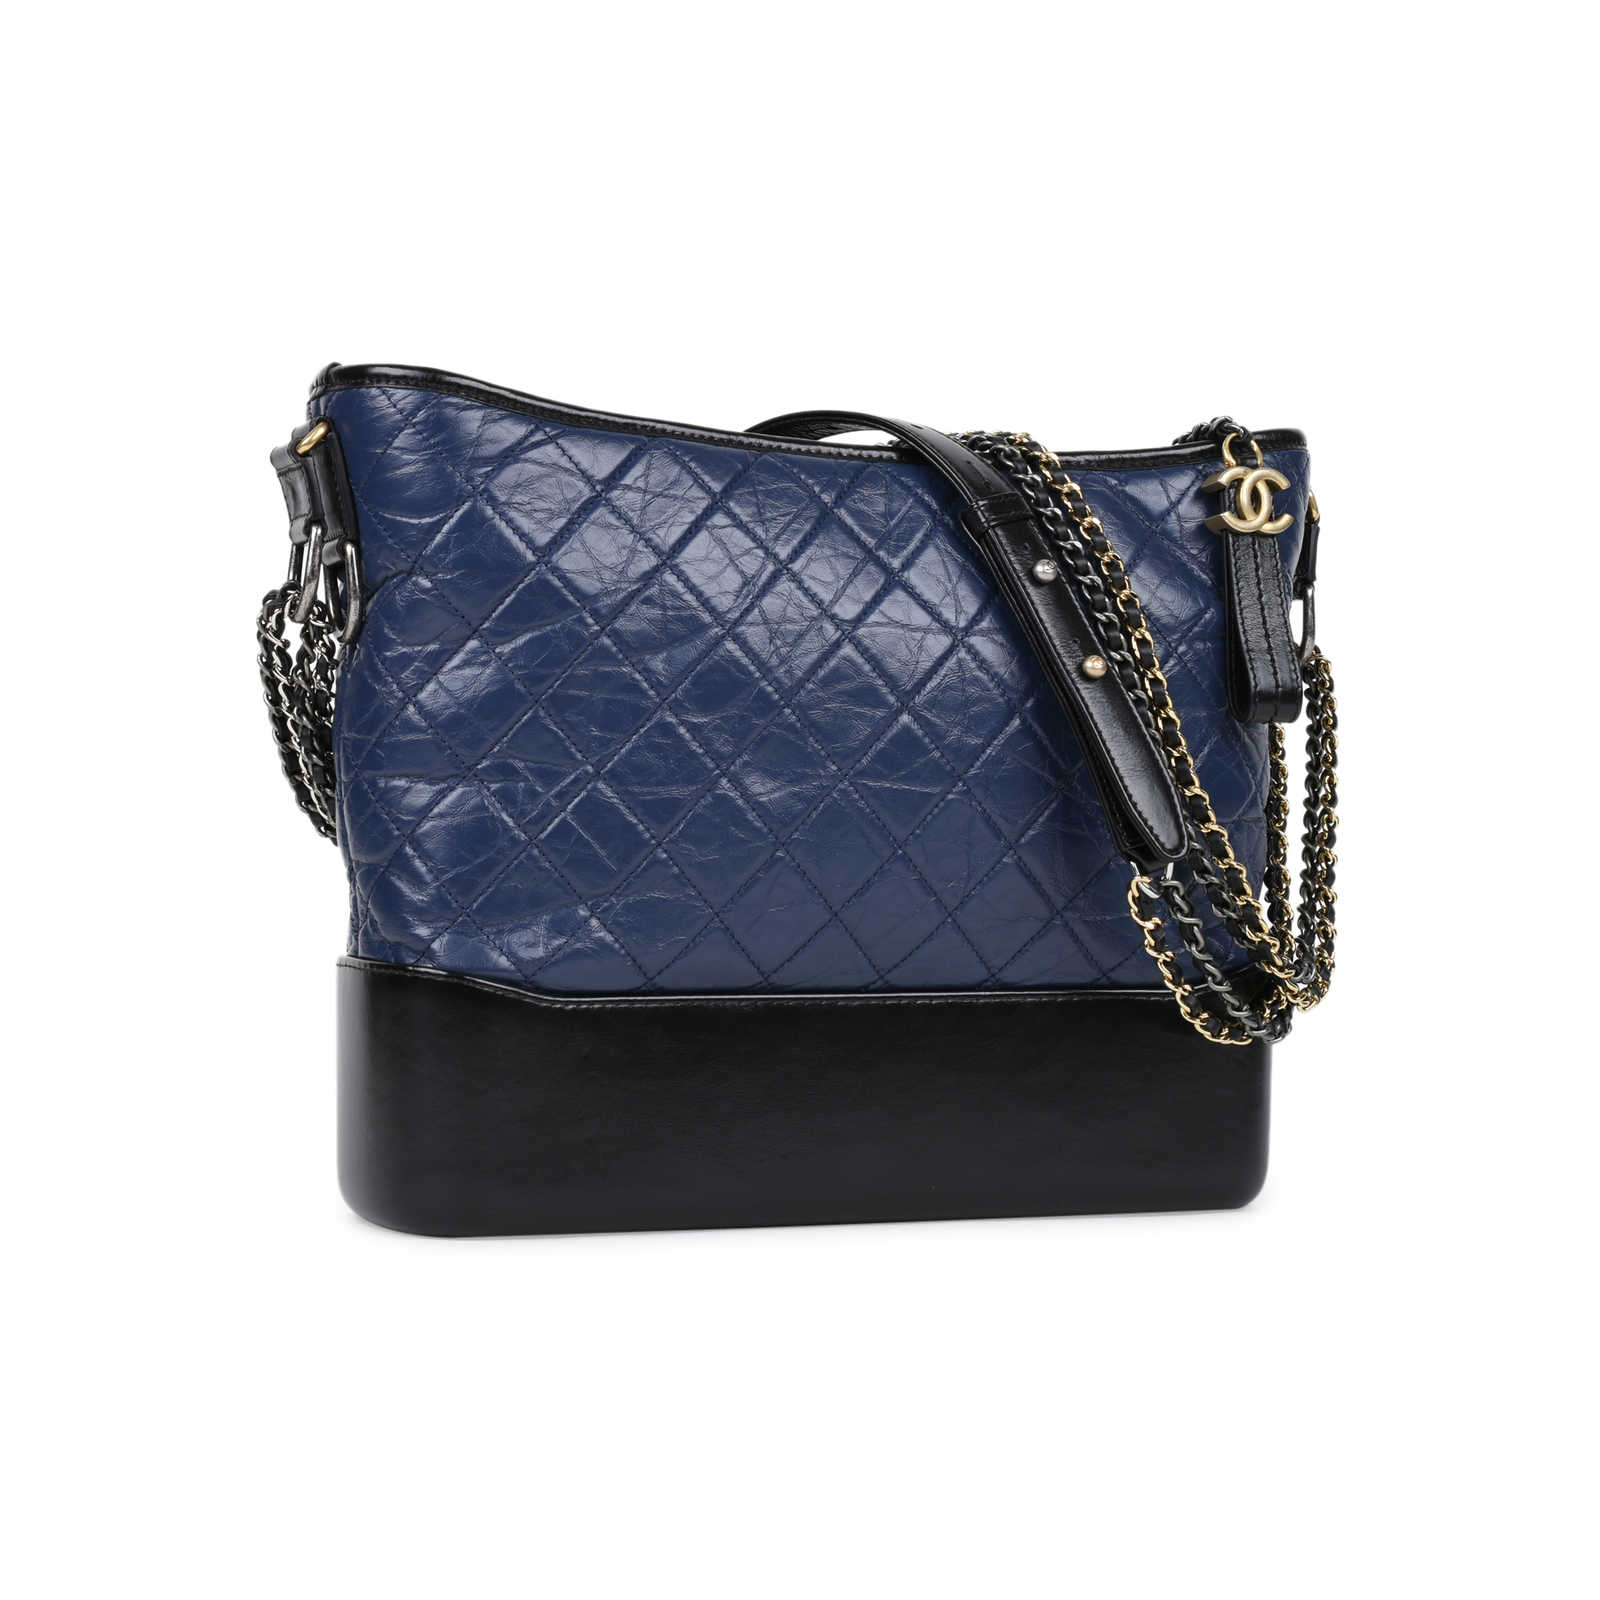 35e270233672 ... Authentic Second Hand Chanel Gabrielle Large Hobo Bag (PSS-200-01512)  ...